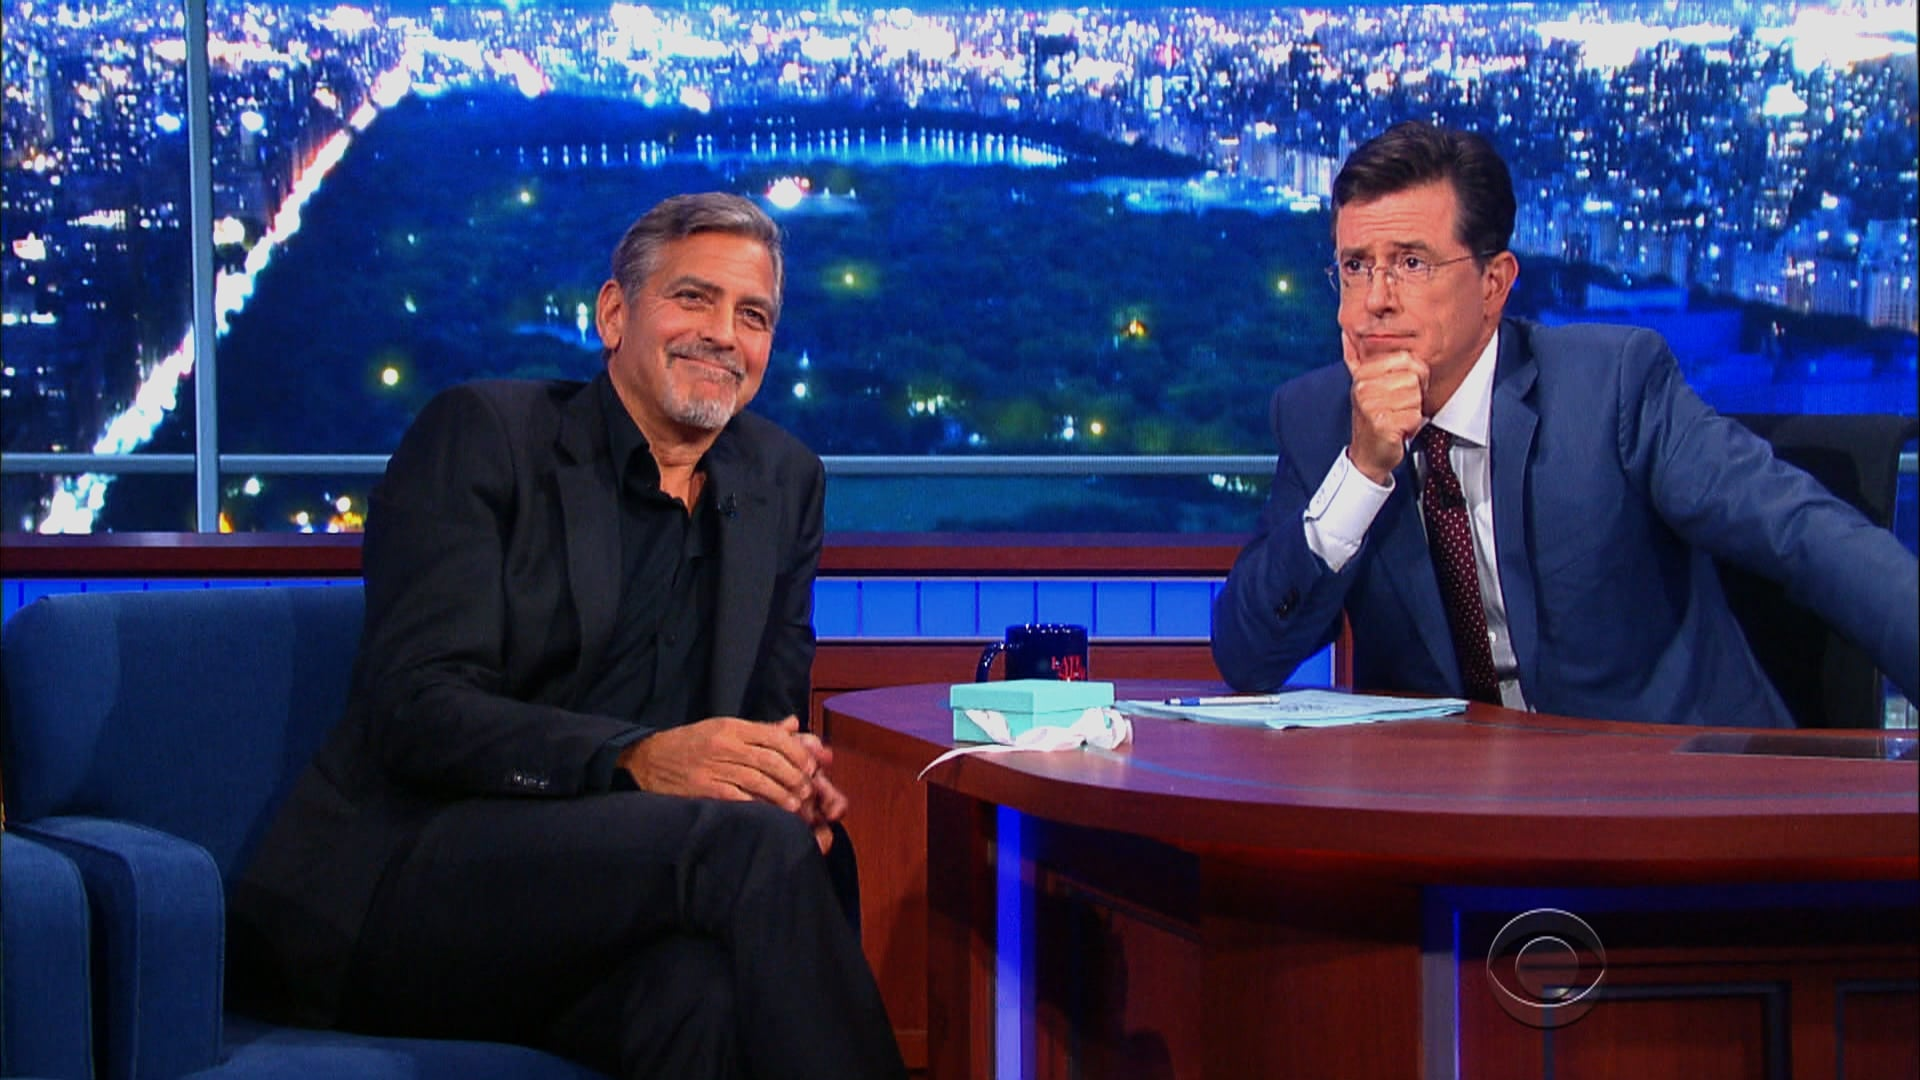 The Late Show with Stephen Colbert Season 1 :Episode 1  George Clooney, Jeb Bush, Jon Batiste & Stay Human